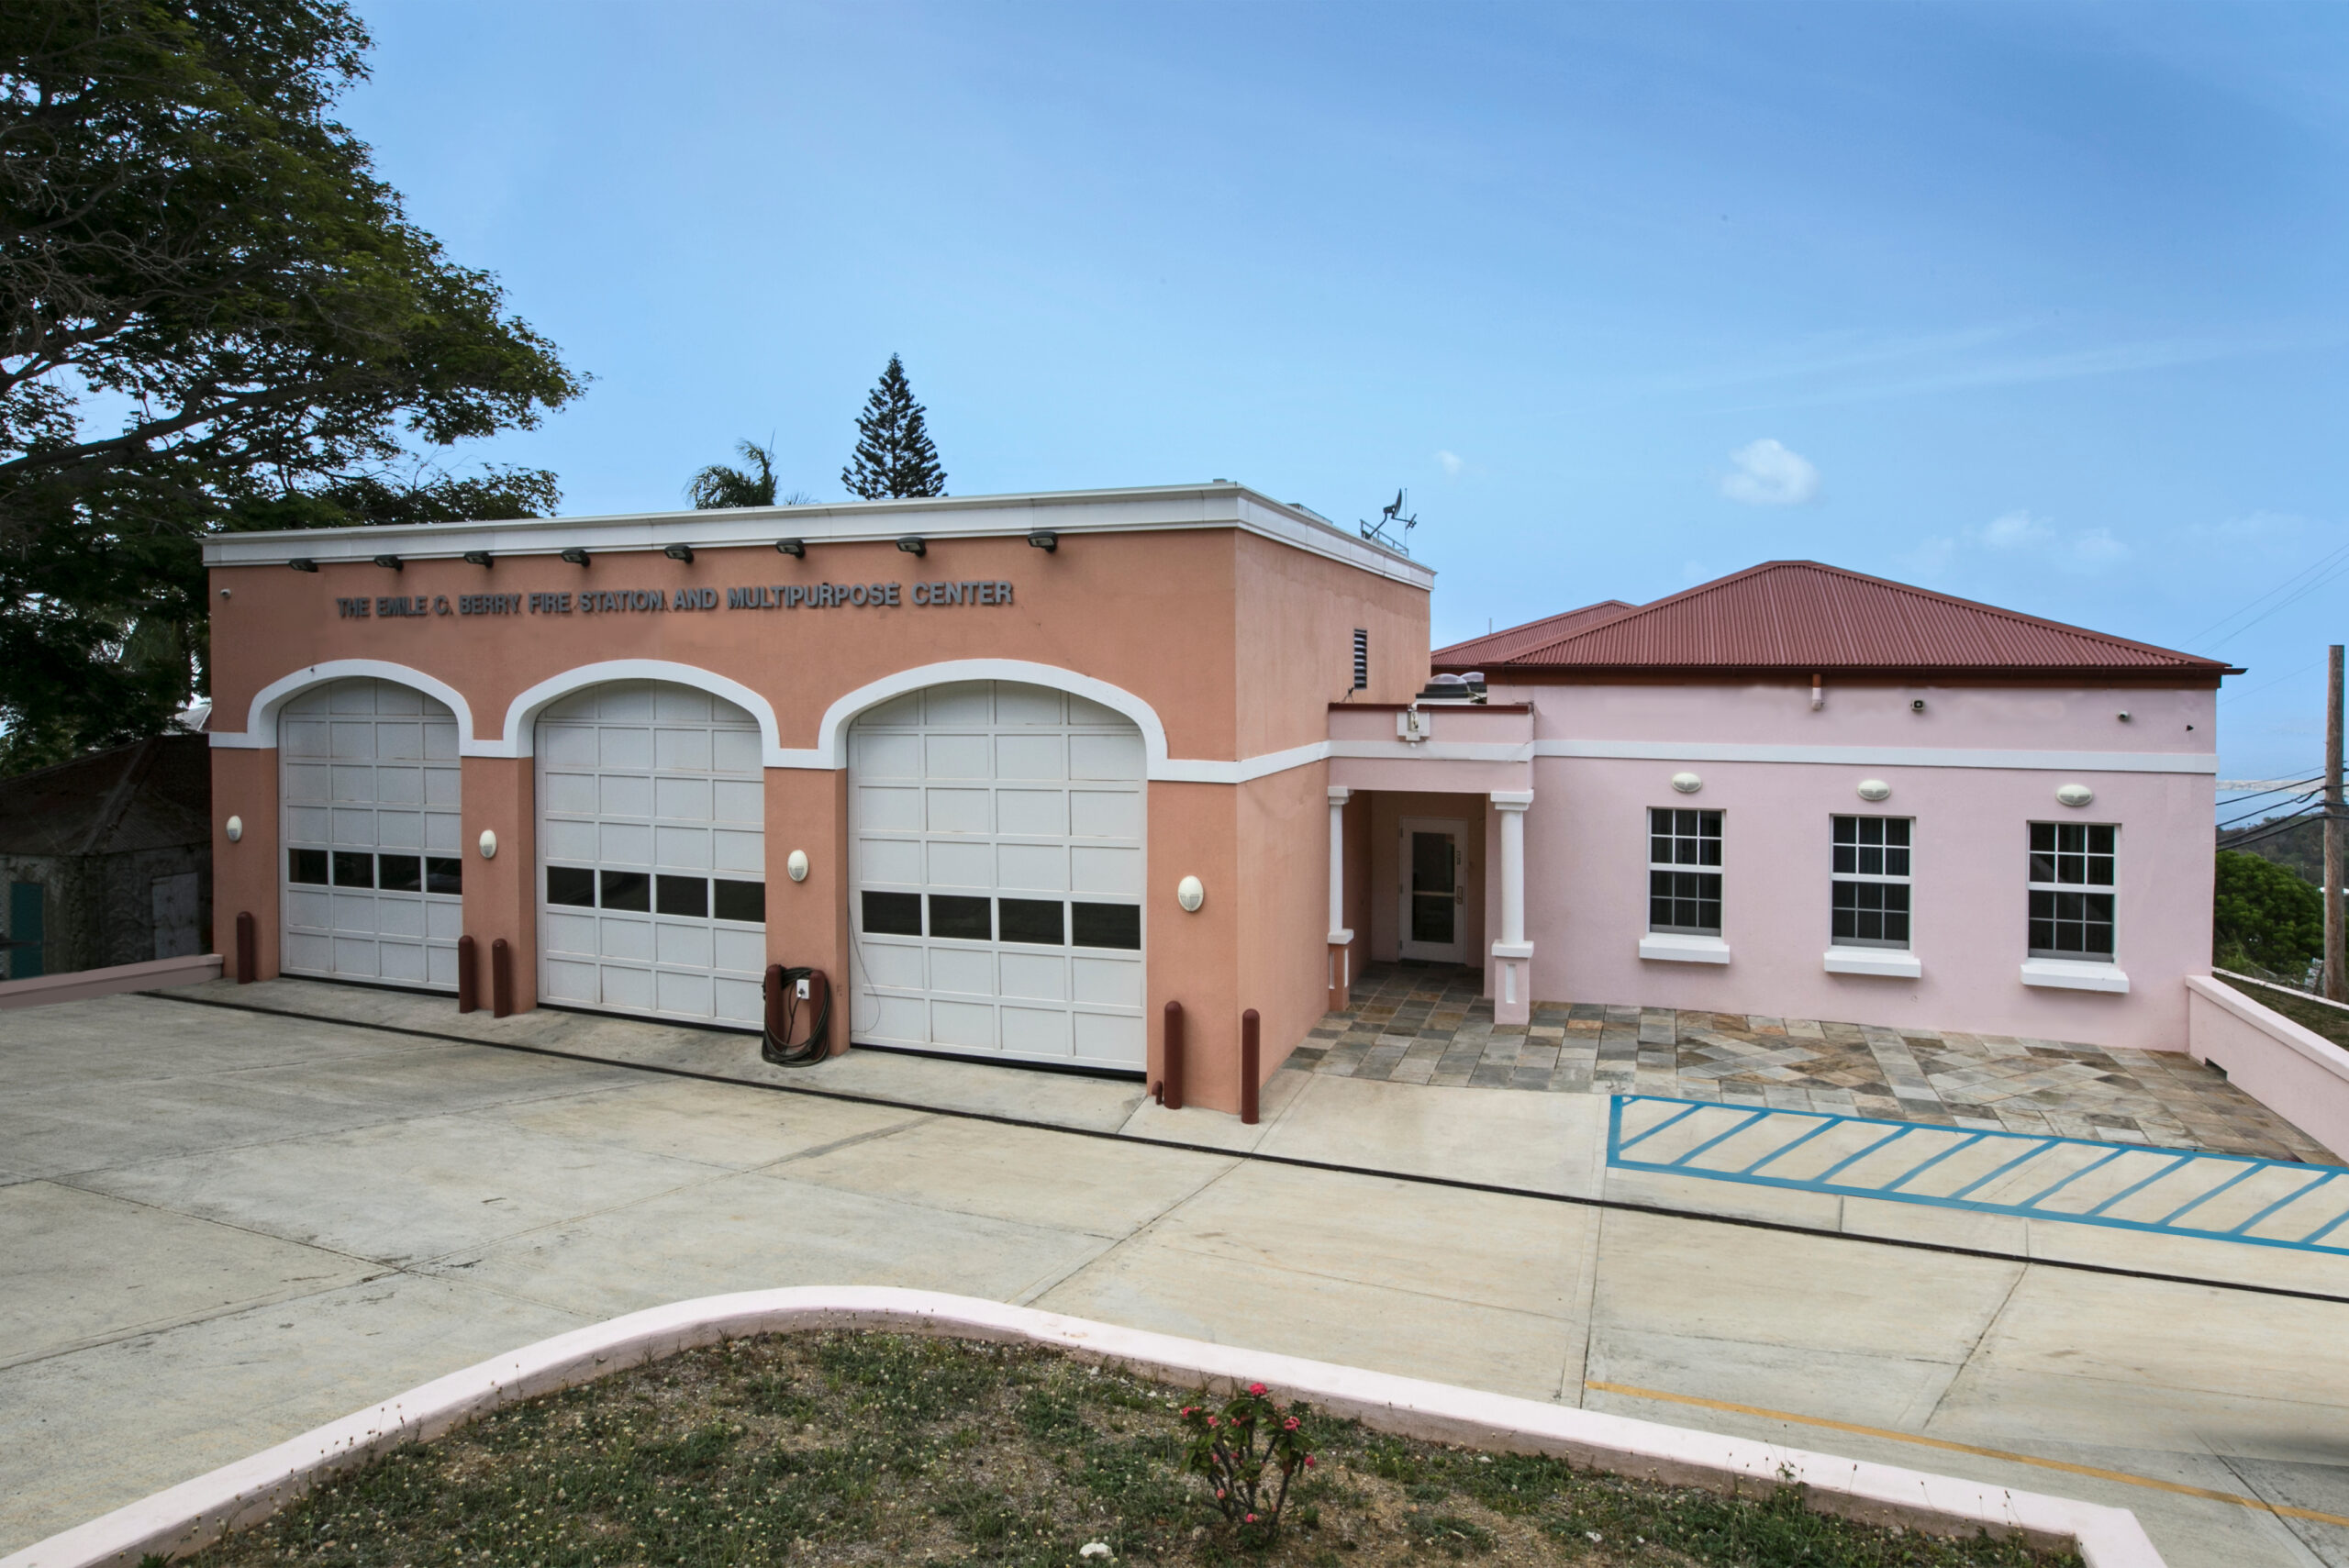 Emile C. Berry Fire Station and Multipurpose Center